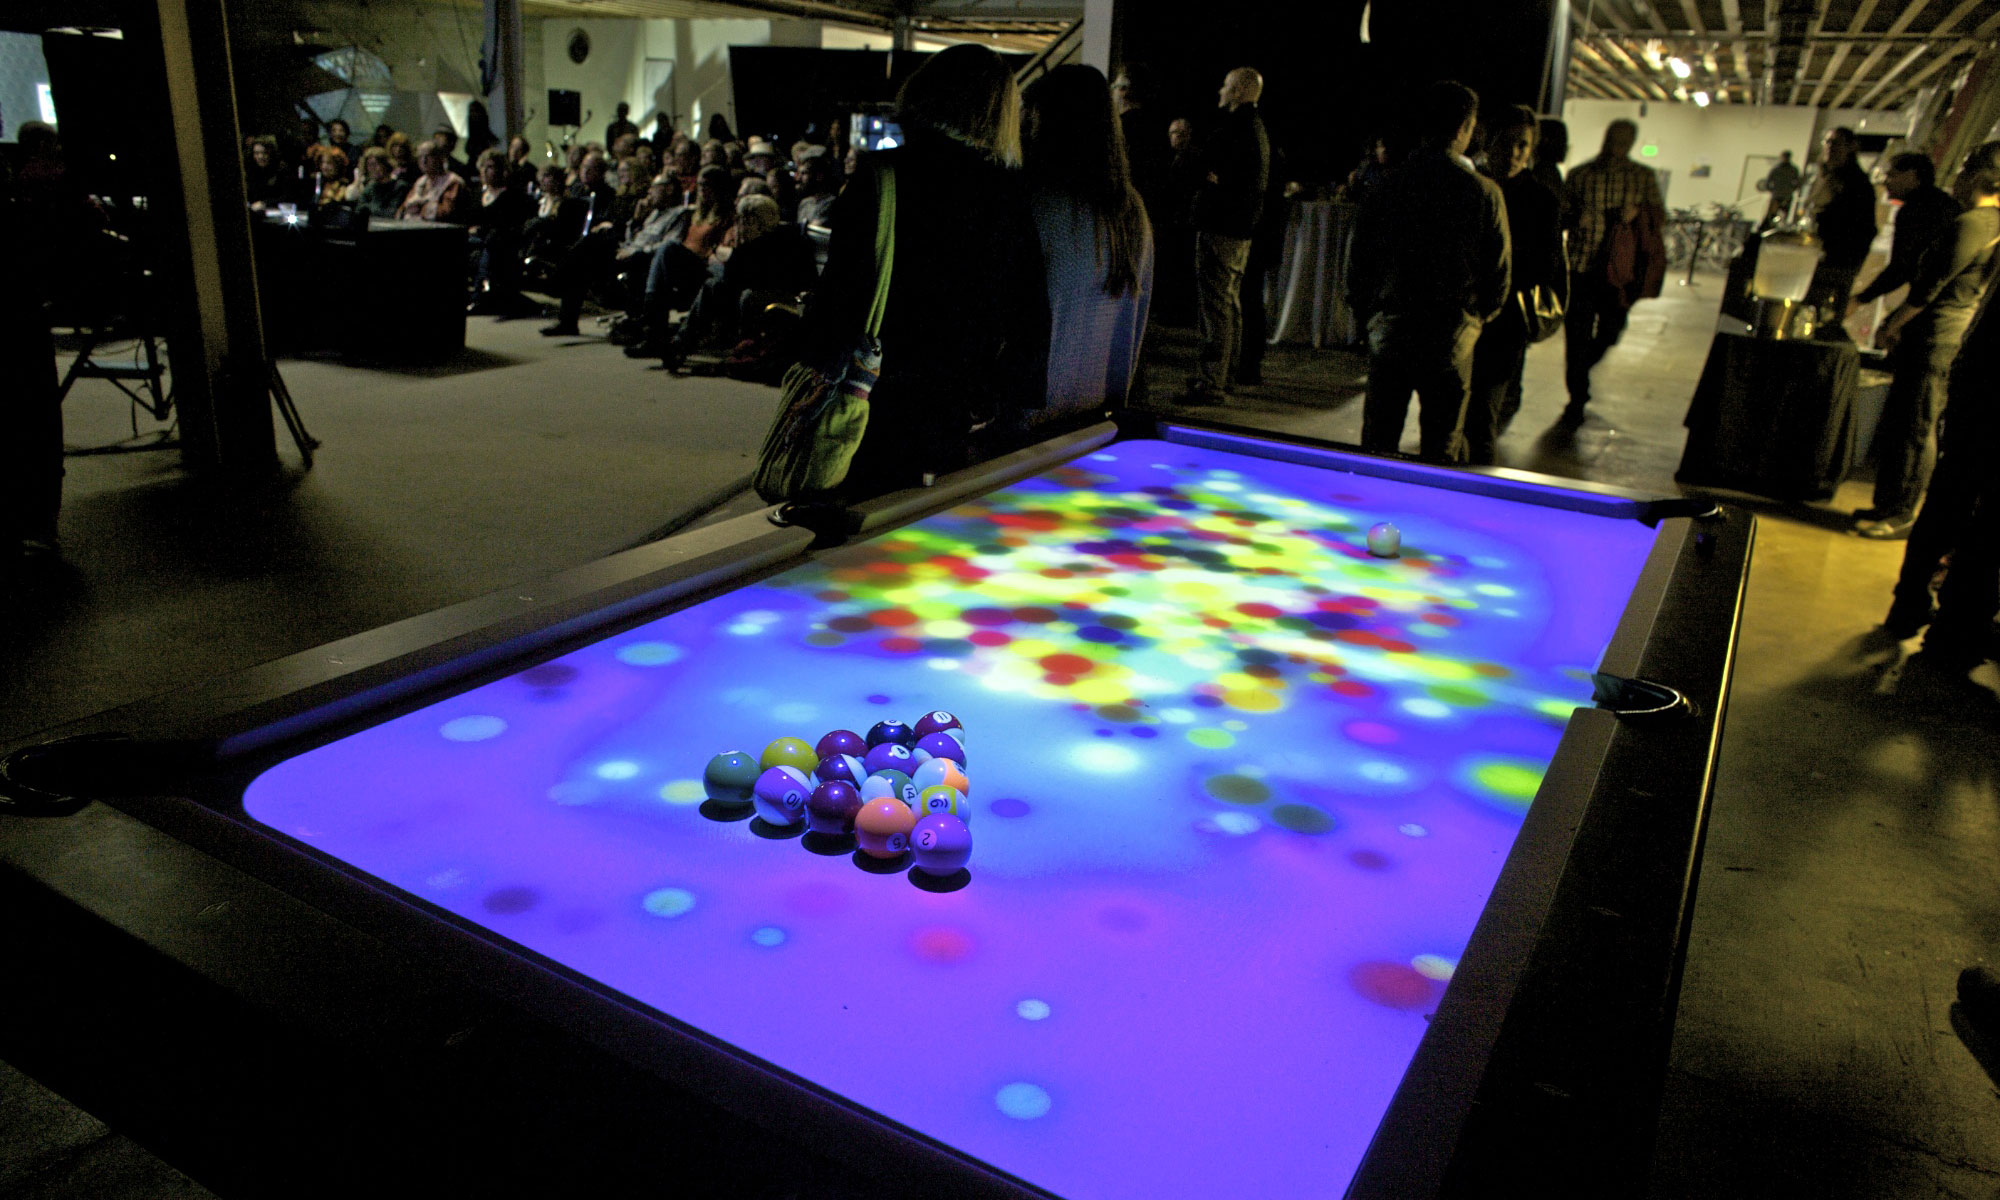 Light projection on a billiards table at Obscura Digital